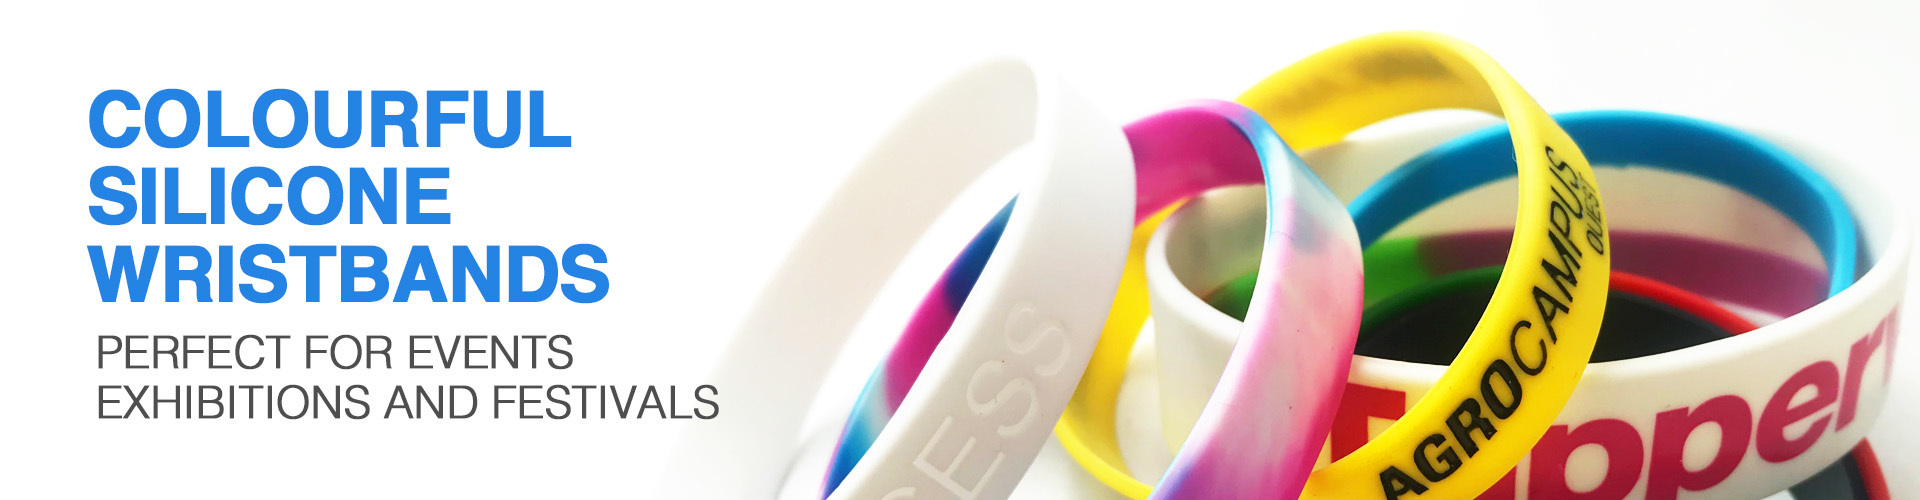 Silicone wristband, Silkscreened Wristband,  Debossed with/without Colour Infill Wristbands. Silicone Rings